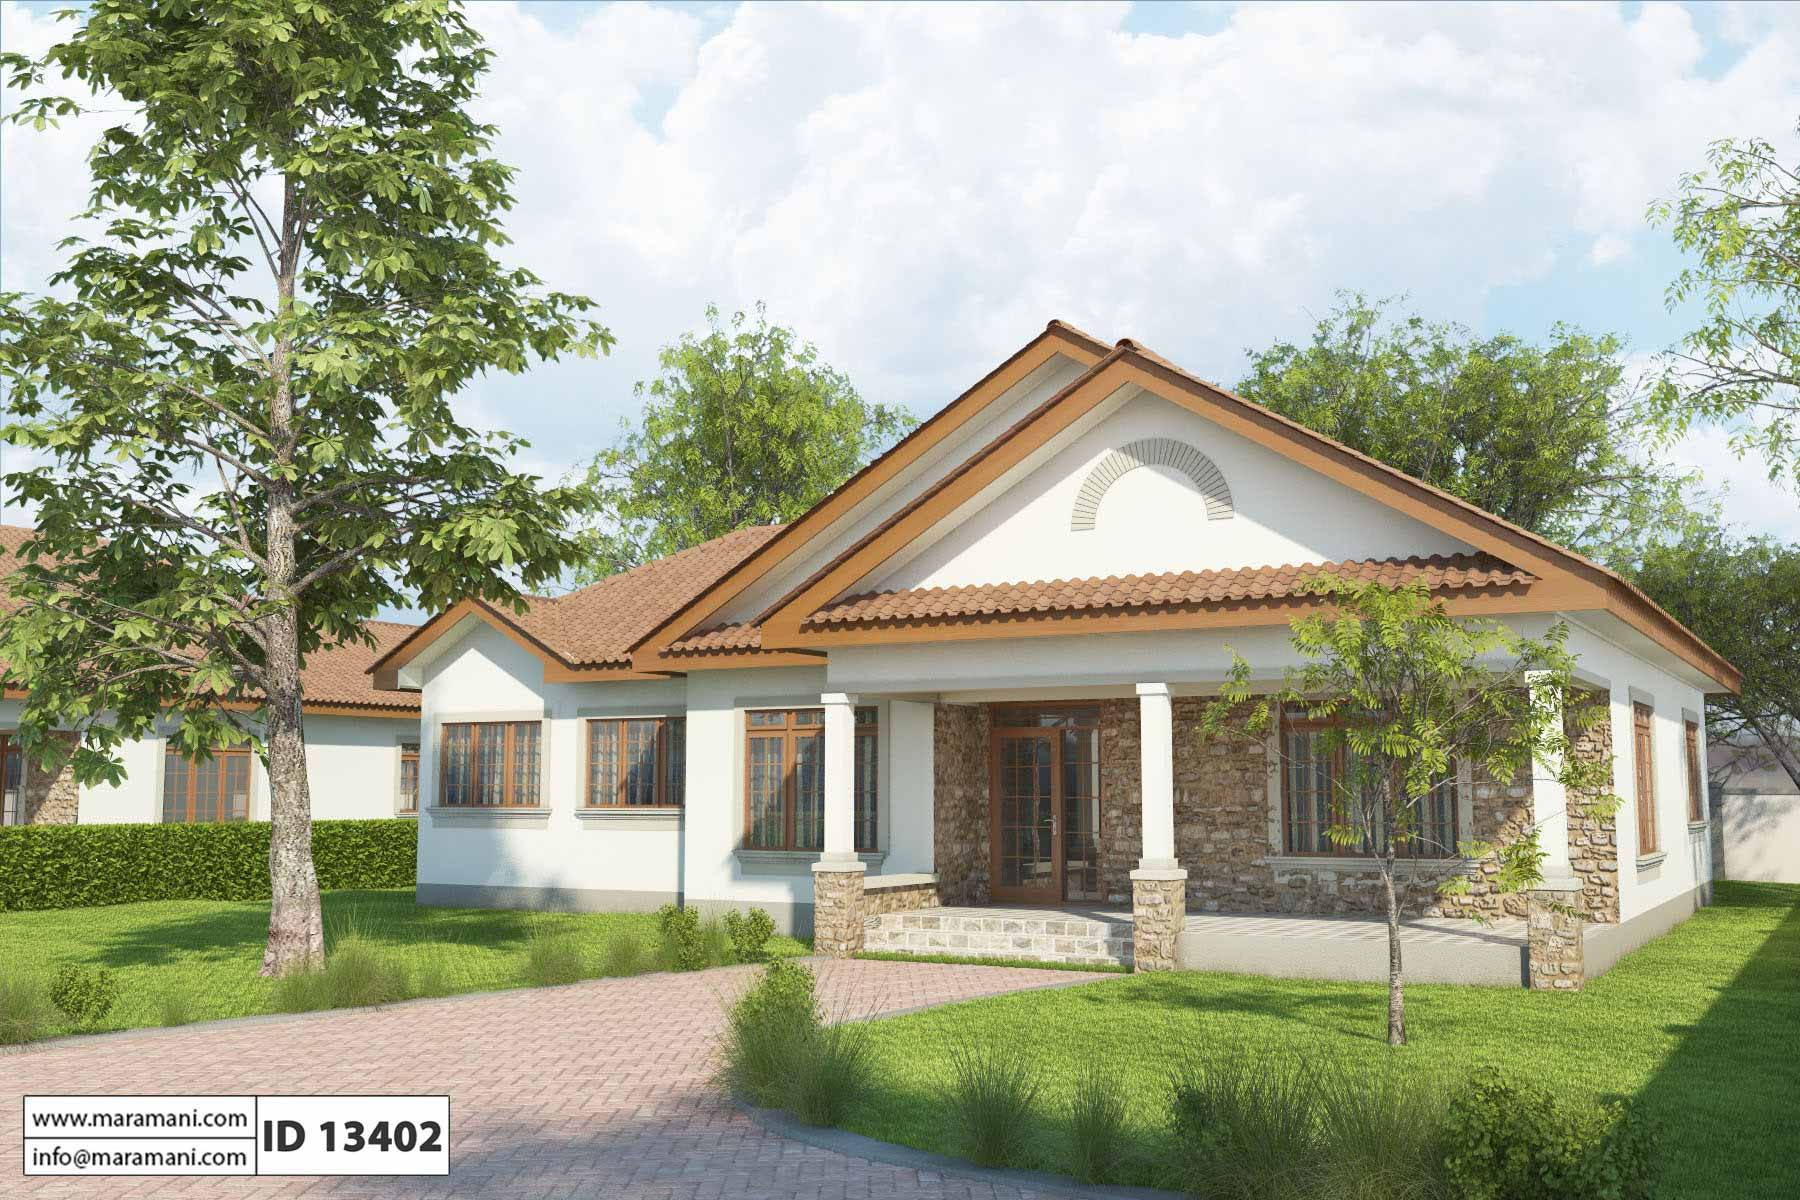 Simple 3 bedroom house plan id 13402 house designs by for Small three bedroom house